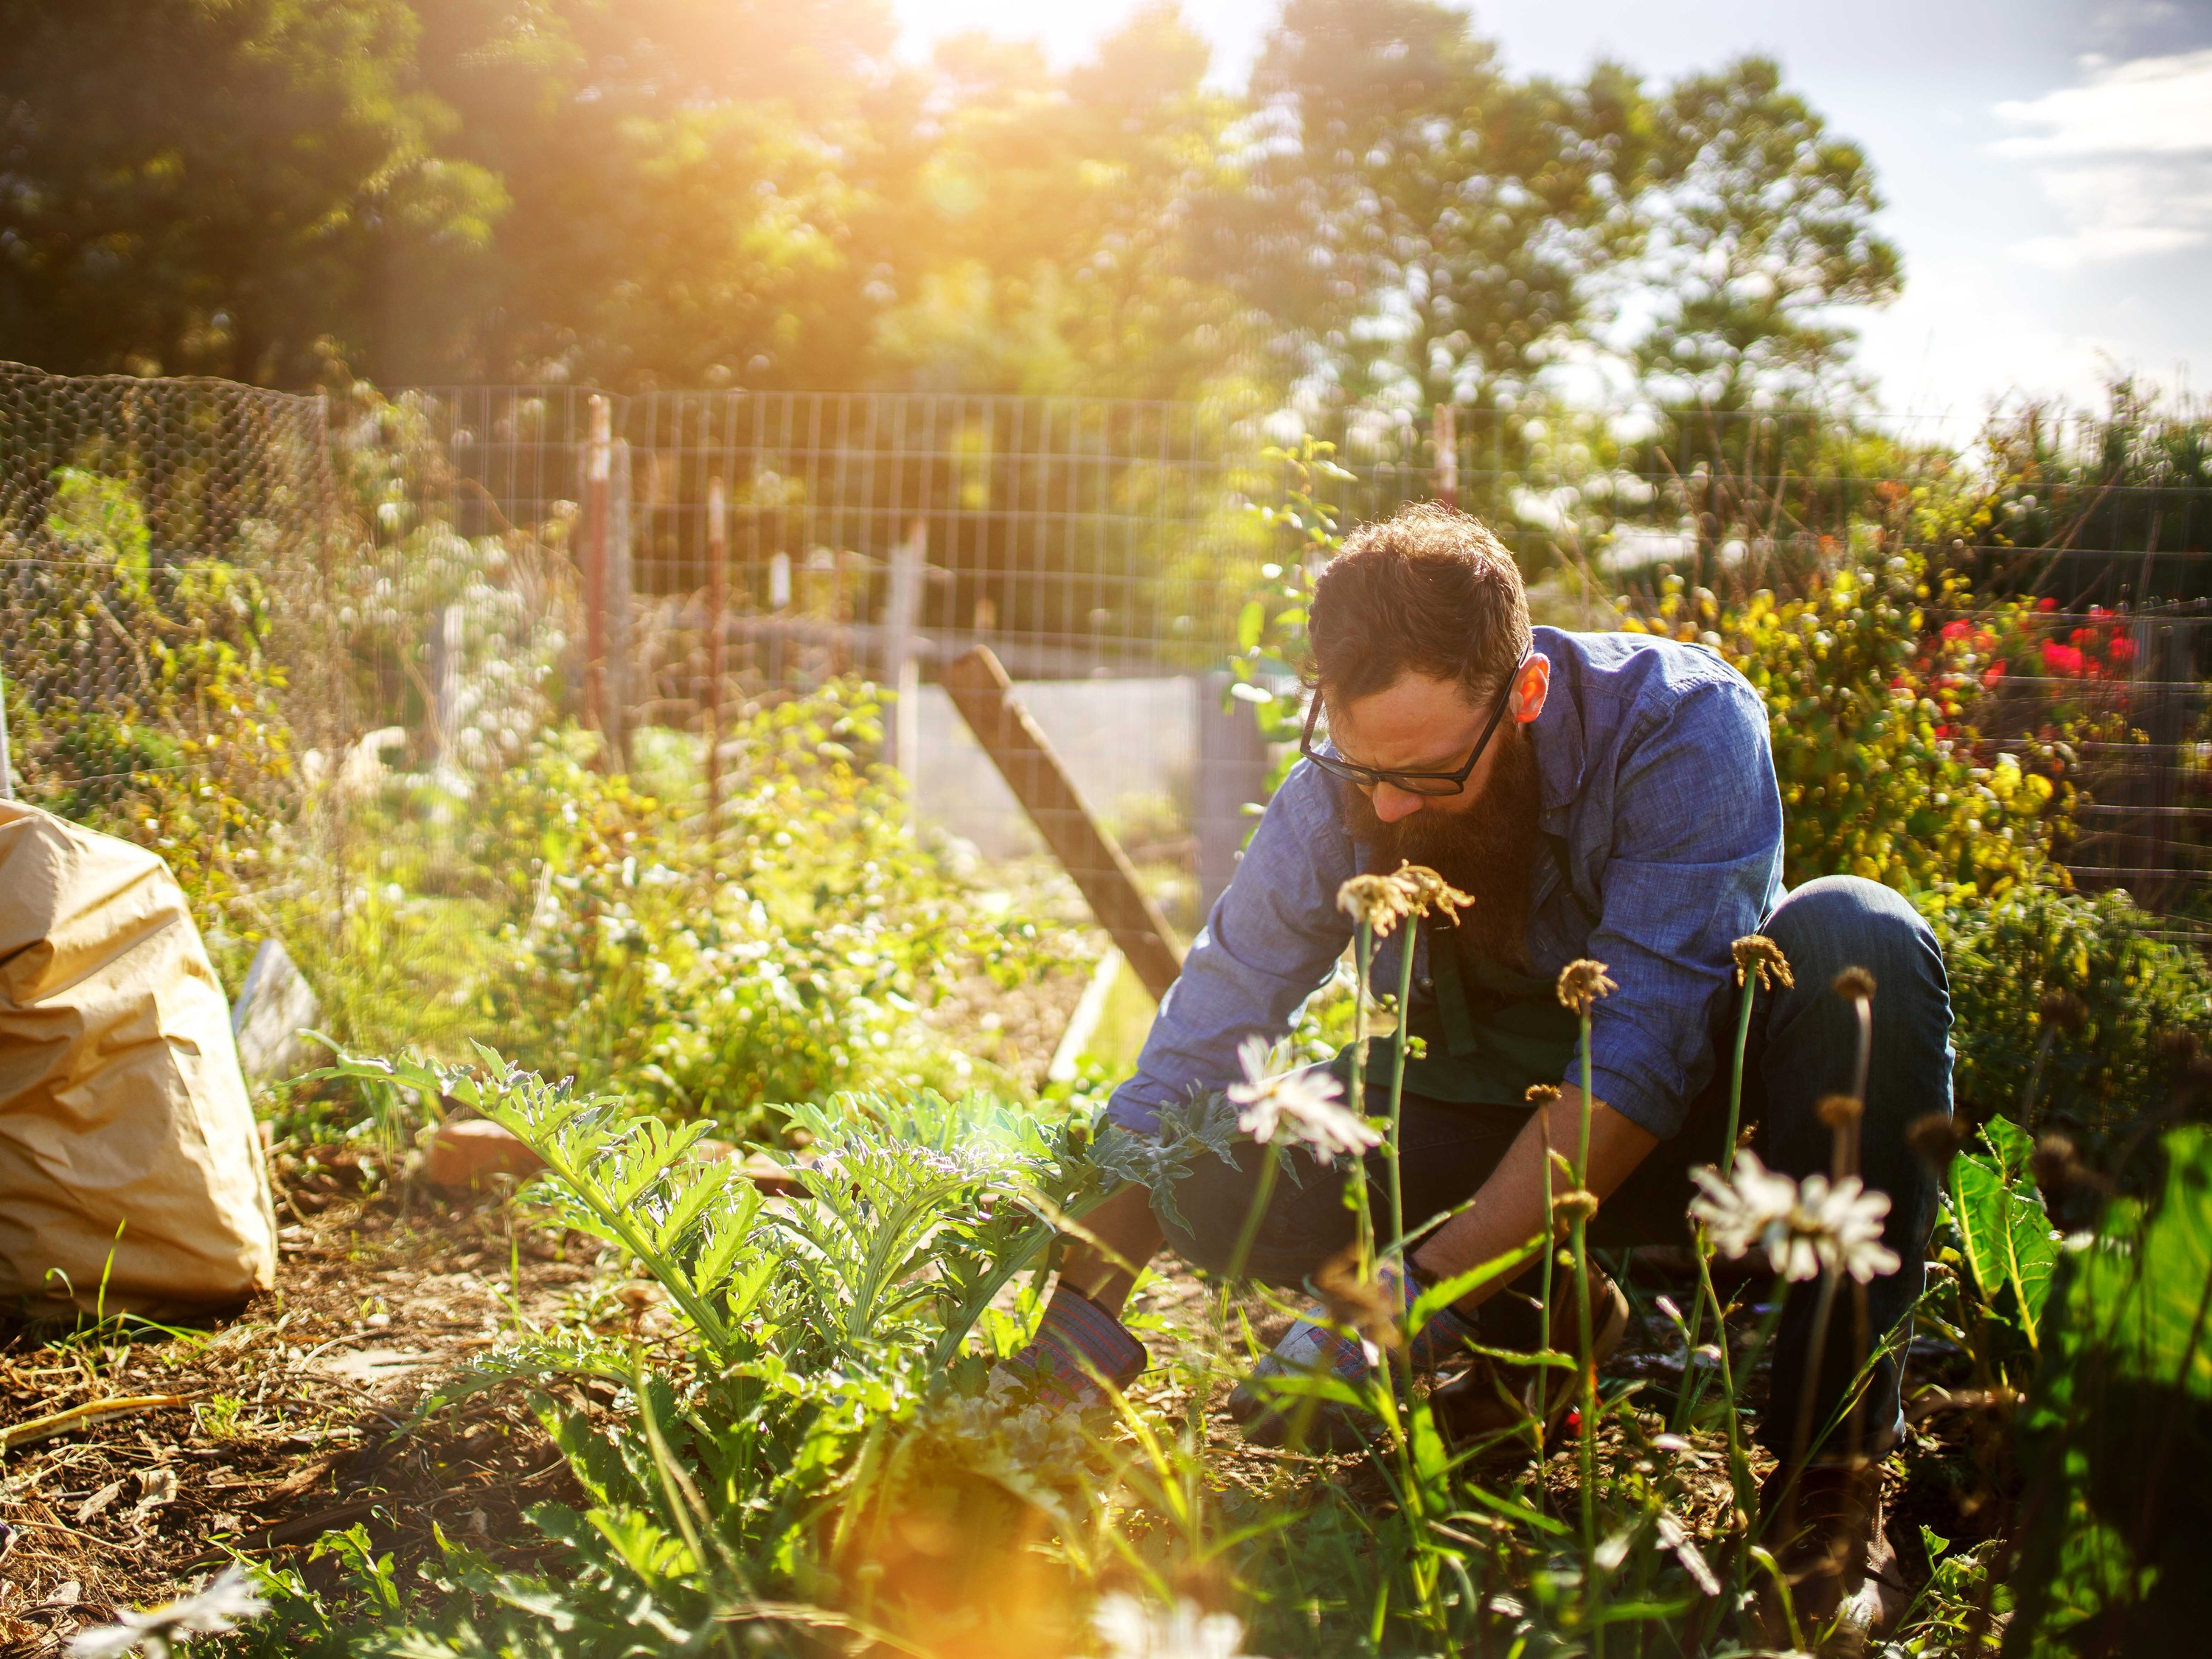 Want to grow your own modern-day Victory Garden?